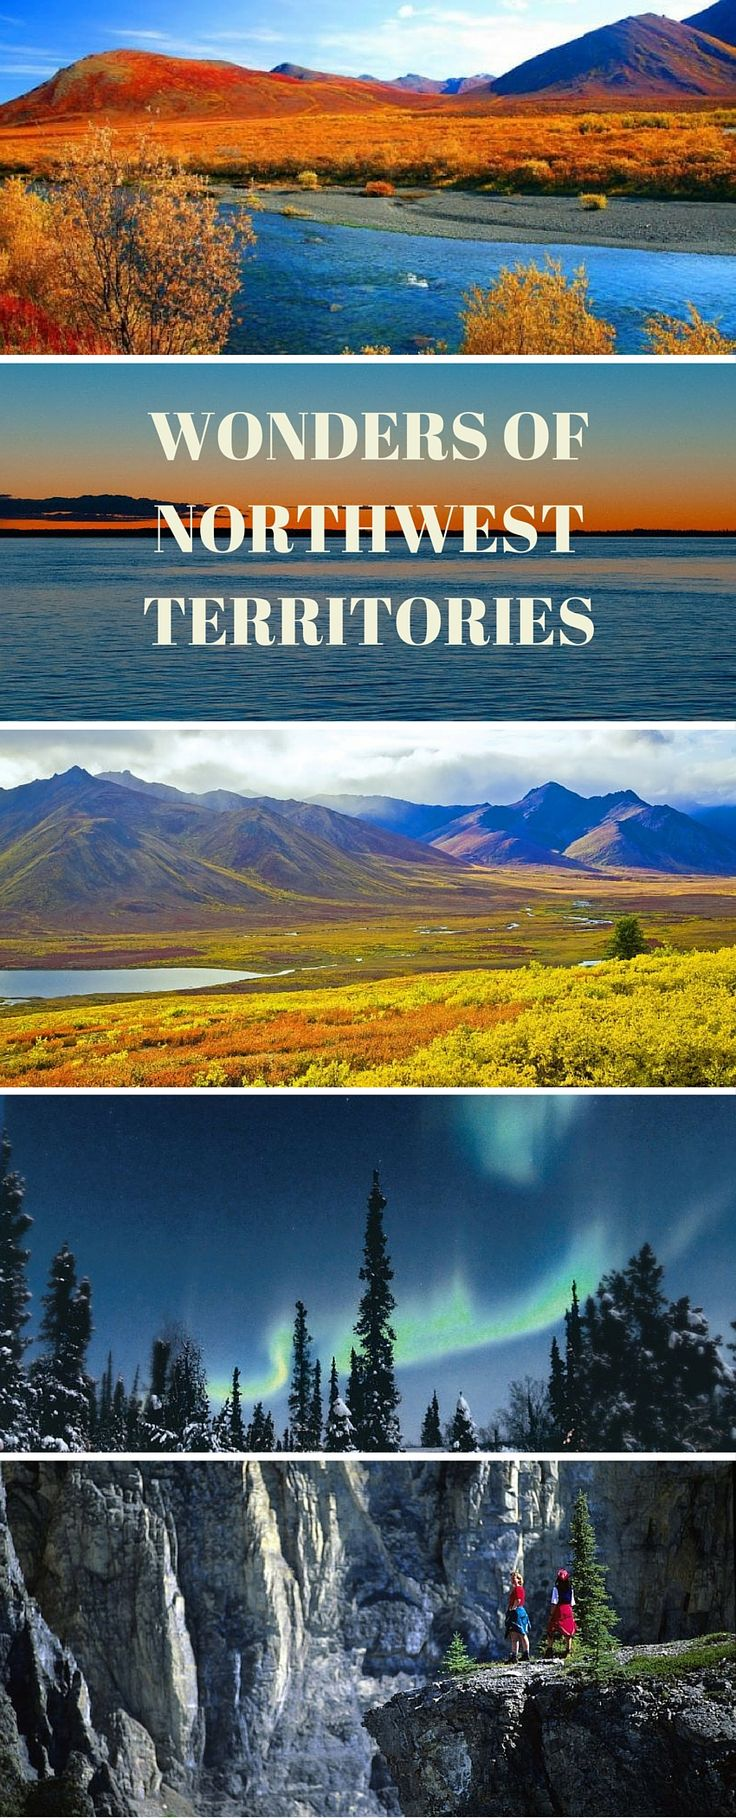 Deep in the far north, the Northwest Territories morphs into Canada's wildest wilderness.